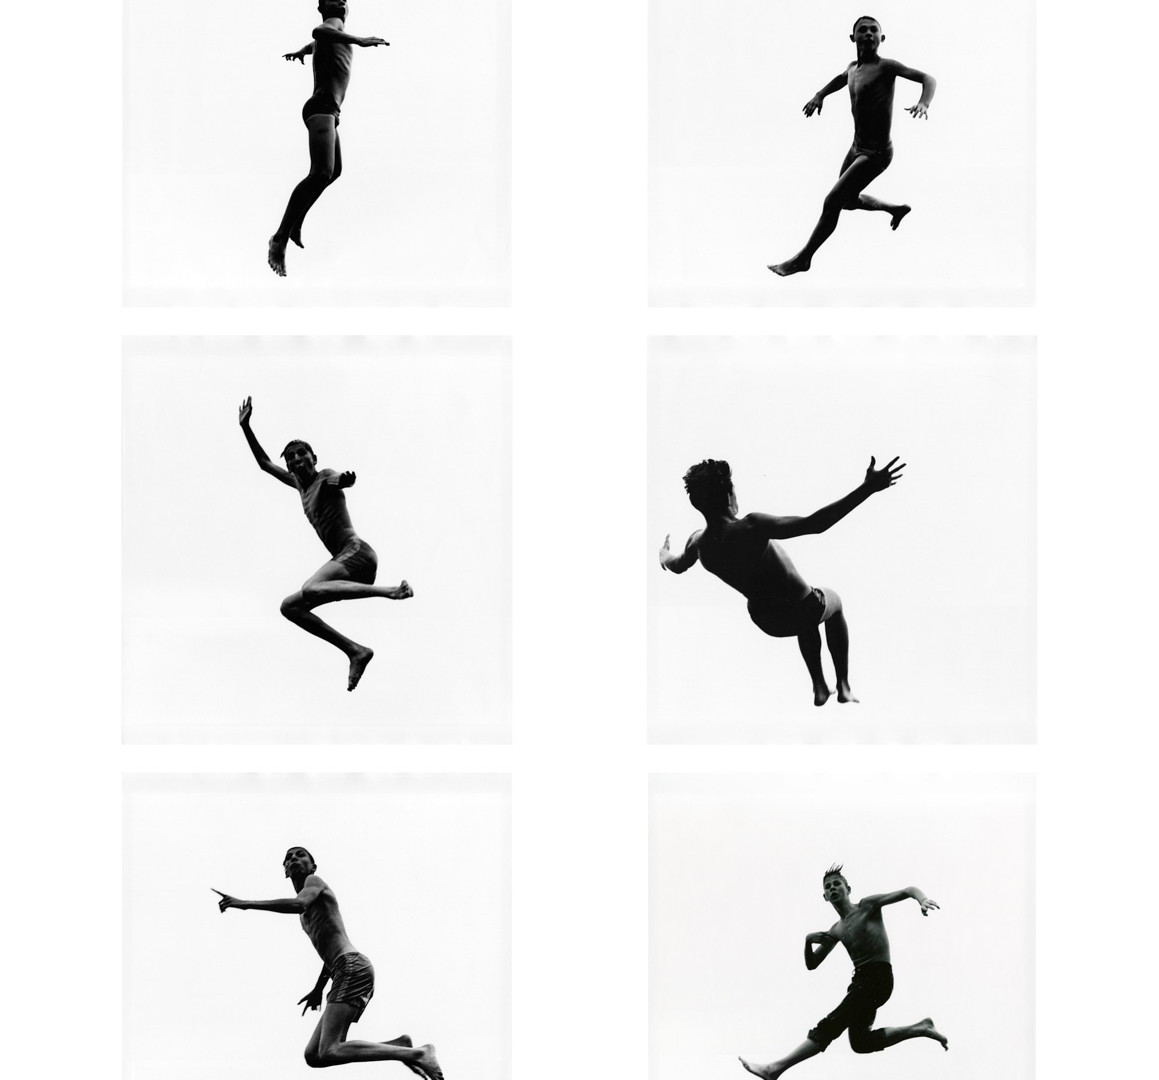 Aaron Siskind, Pleasures and Terrors of Levitation, 1954-56